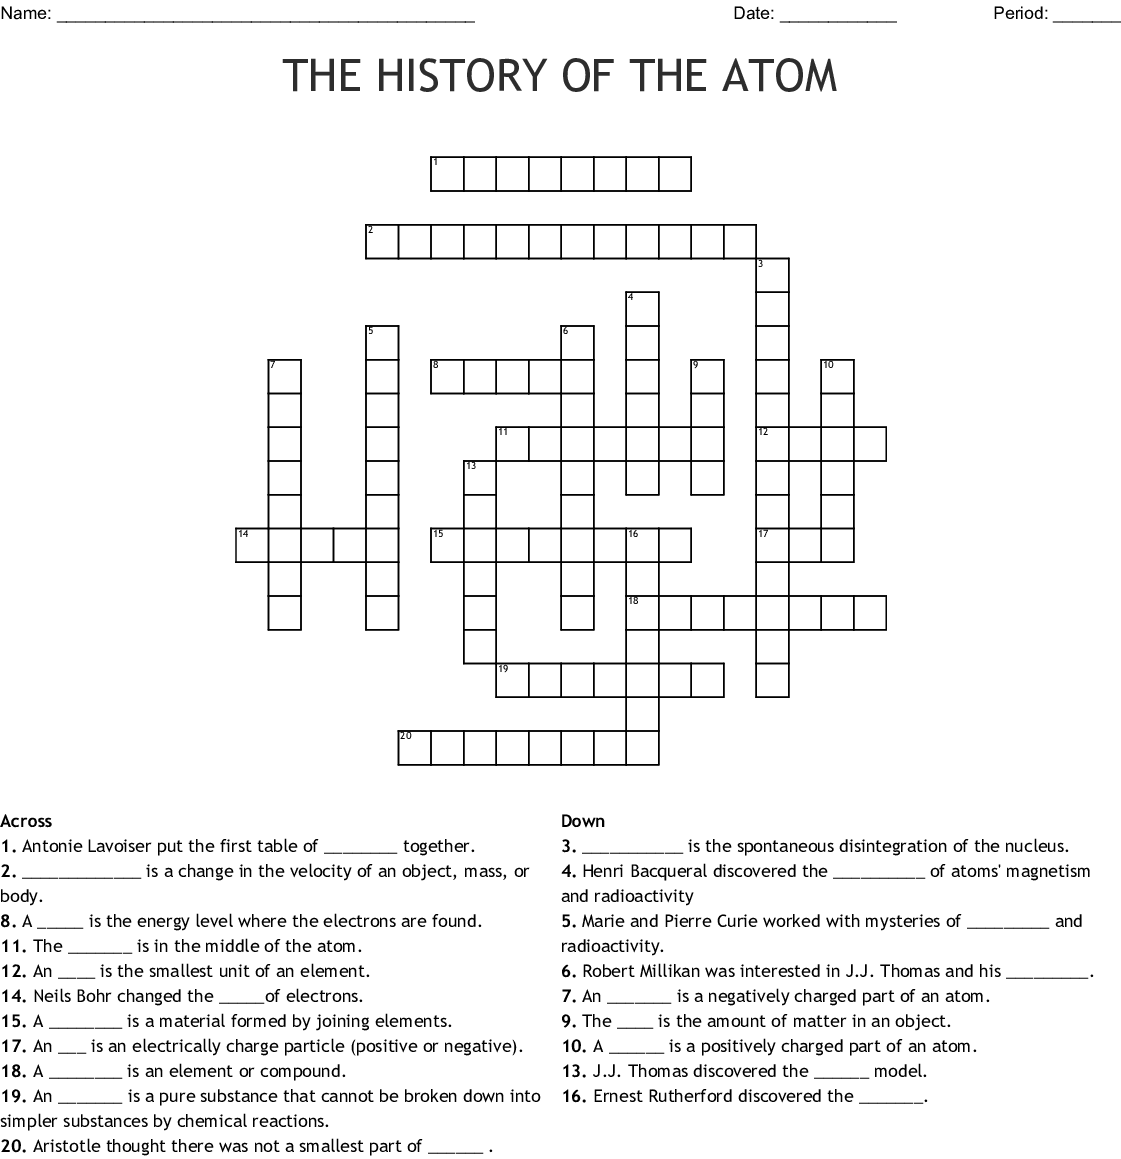 History Of The Atom Worksheet